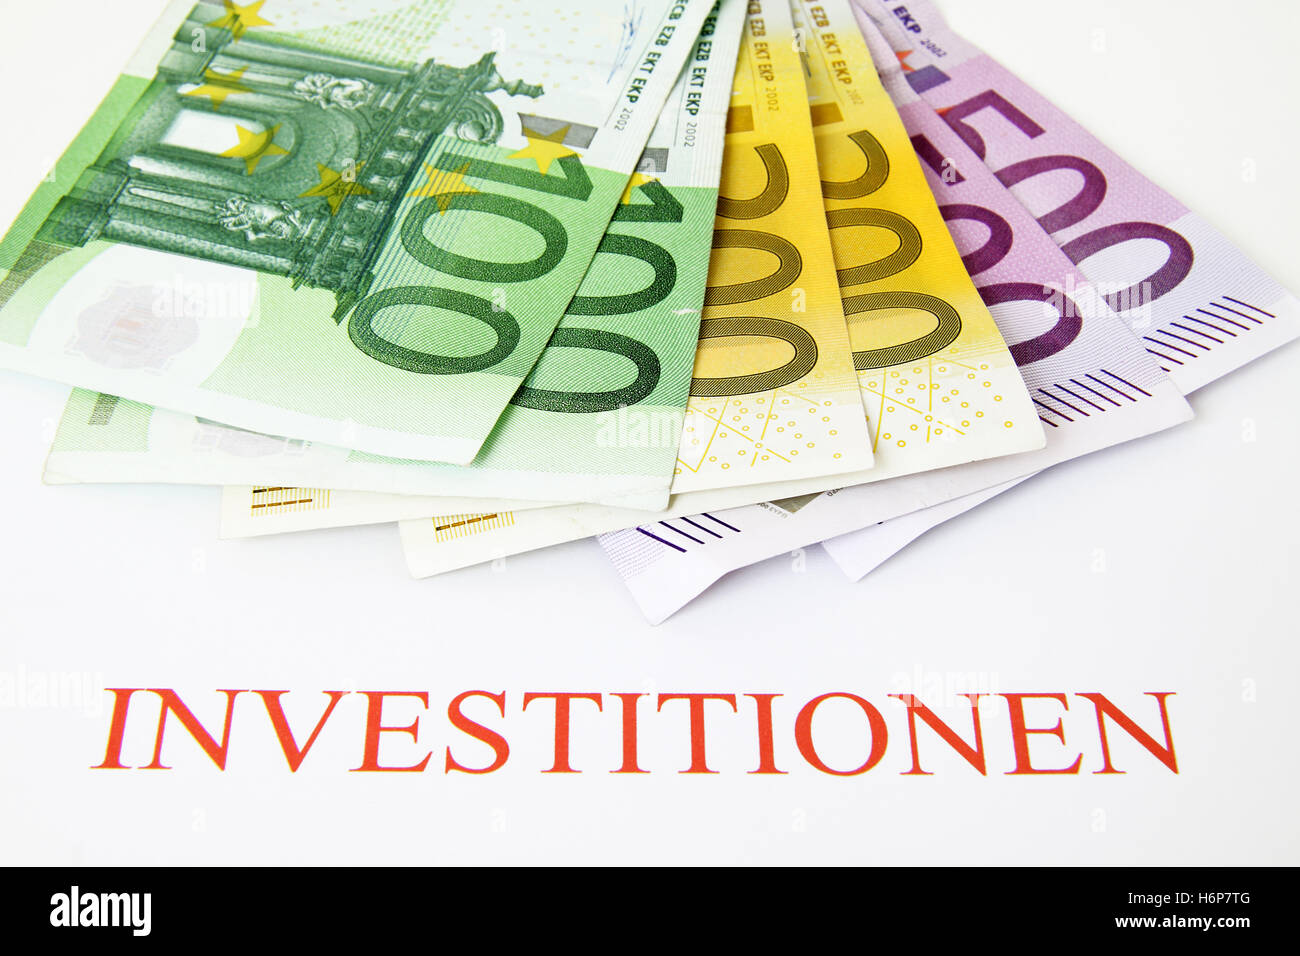 investments - Stock Image